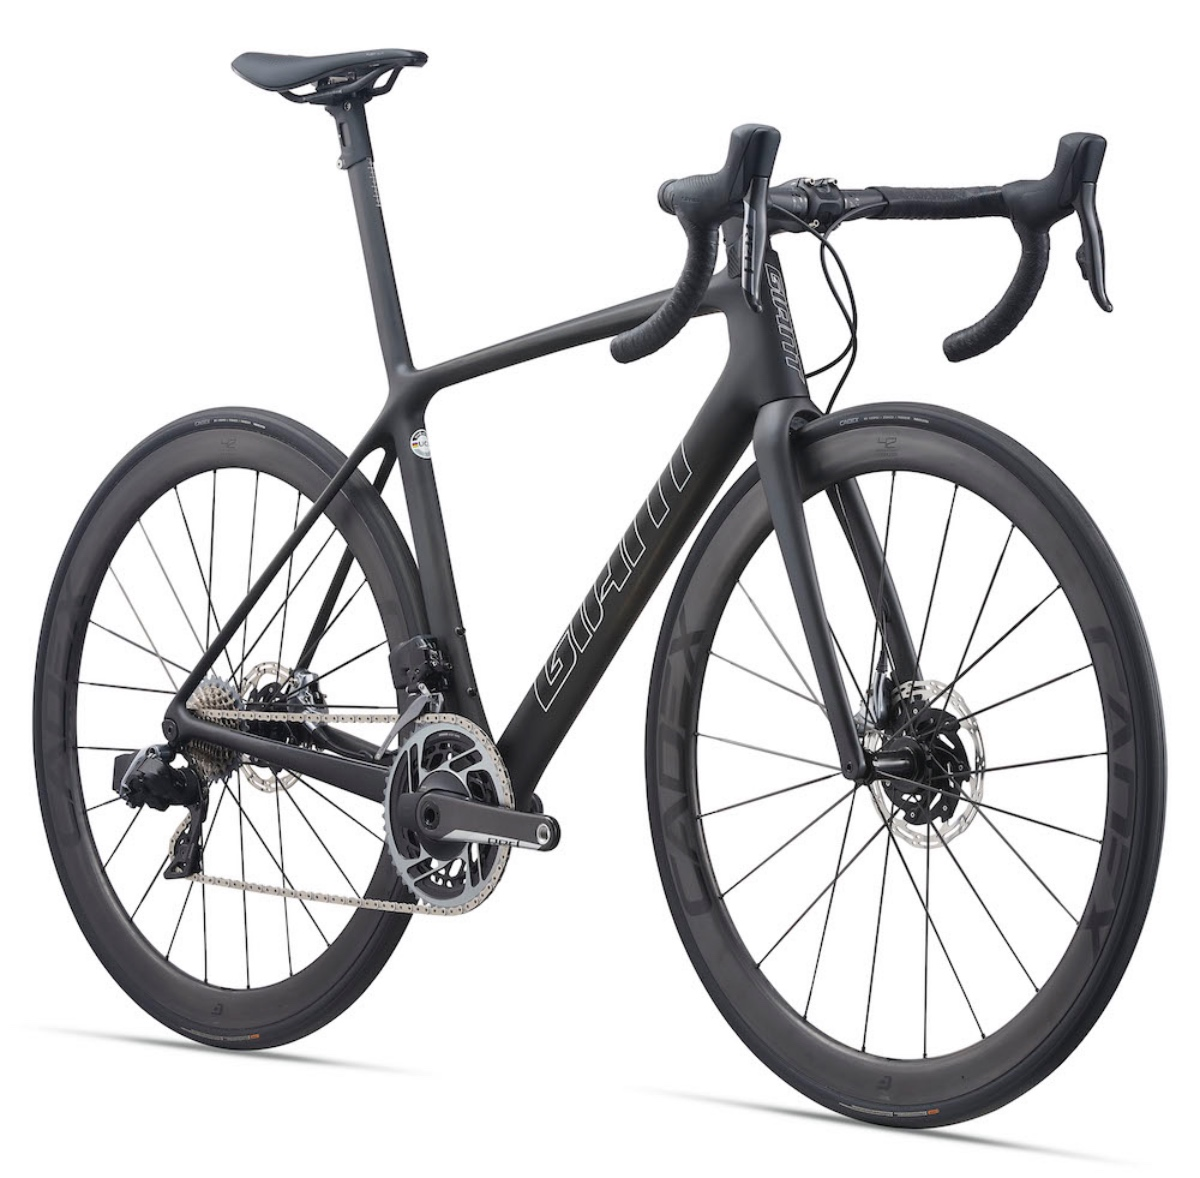 The 2021 TCR Advanced SL 0 Disc features a CADEX 42 Disc Tubeless WheelSystem and SRAM Red eTap AXS wireless electronic drivetrain.